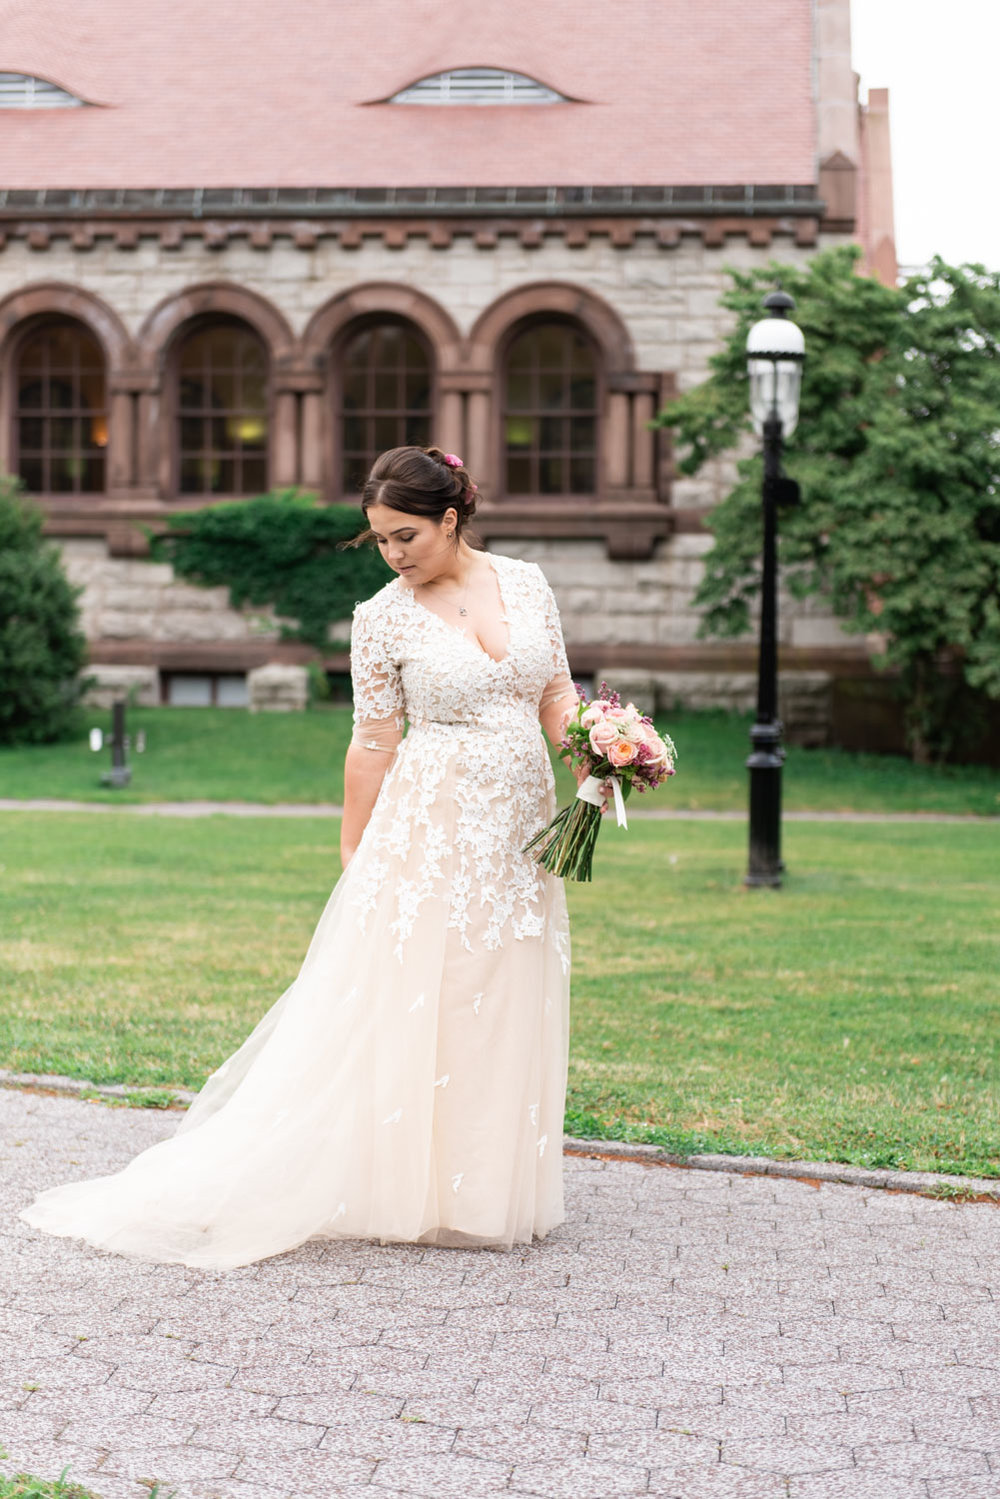 Olga + Albion | Whimsical Quincy City Hall Summer Wedding | Boston and New England Wedding Photography | Lorna Stell Photo